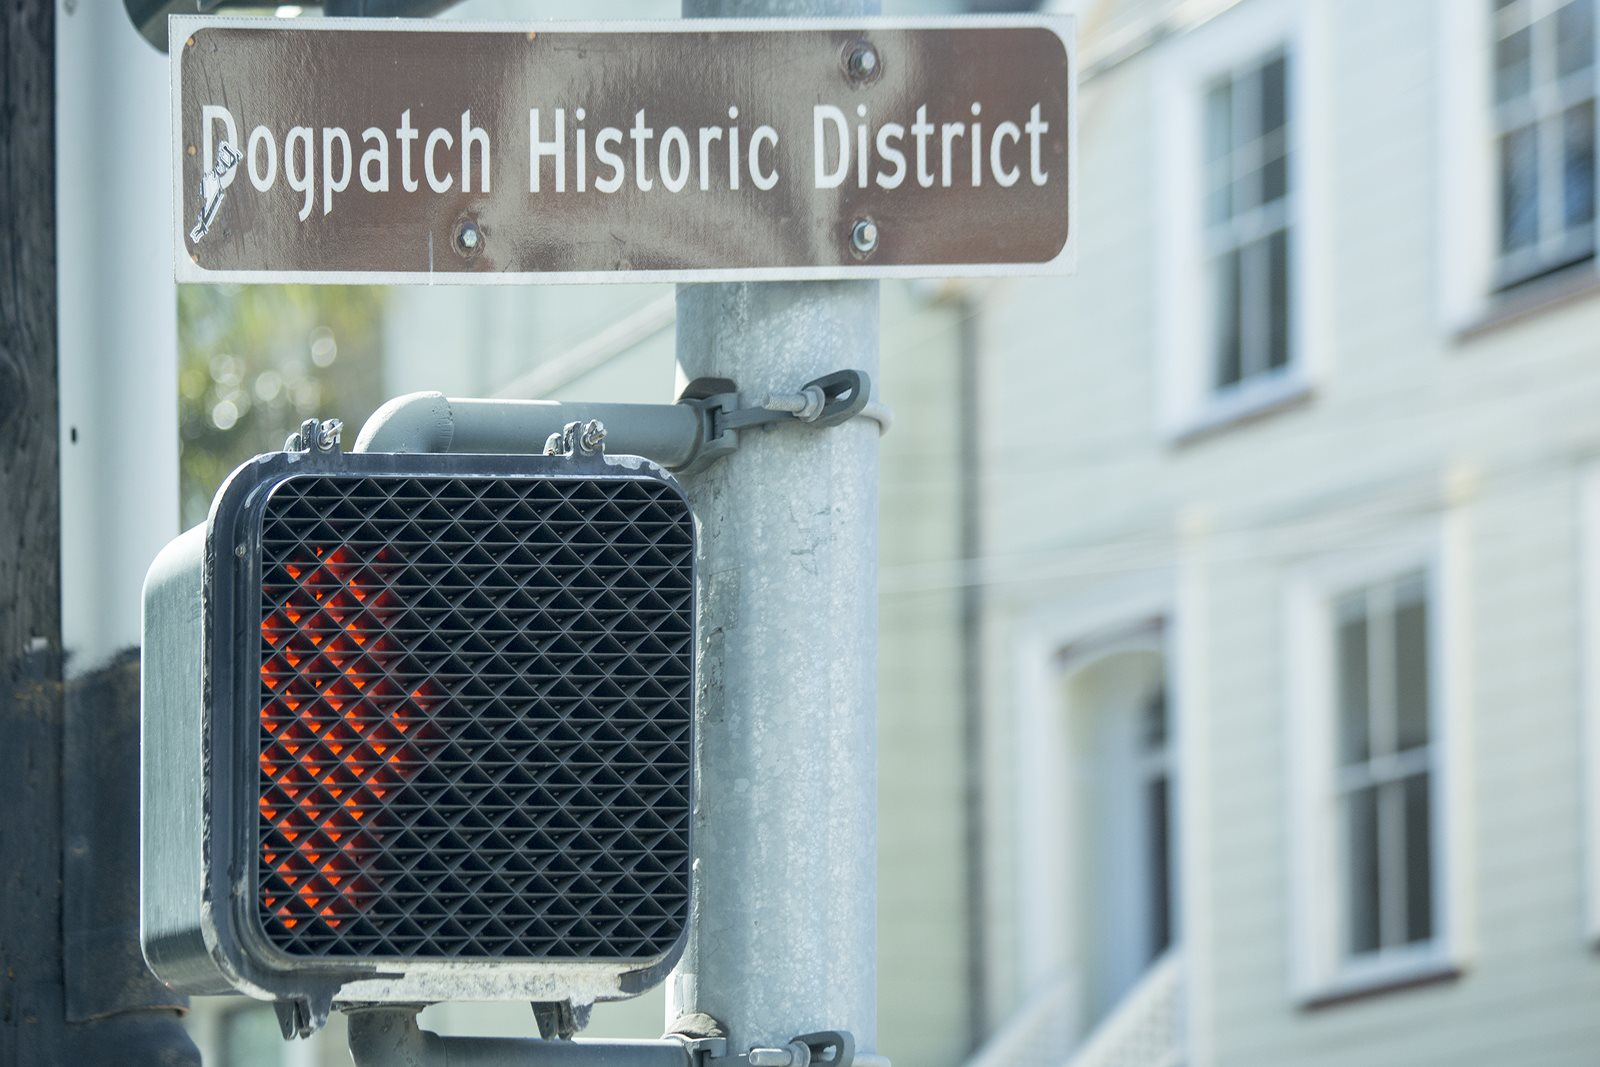 Neighborhood-Dogpatch Historic District